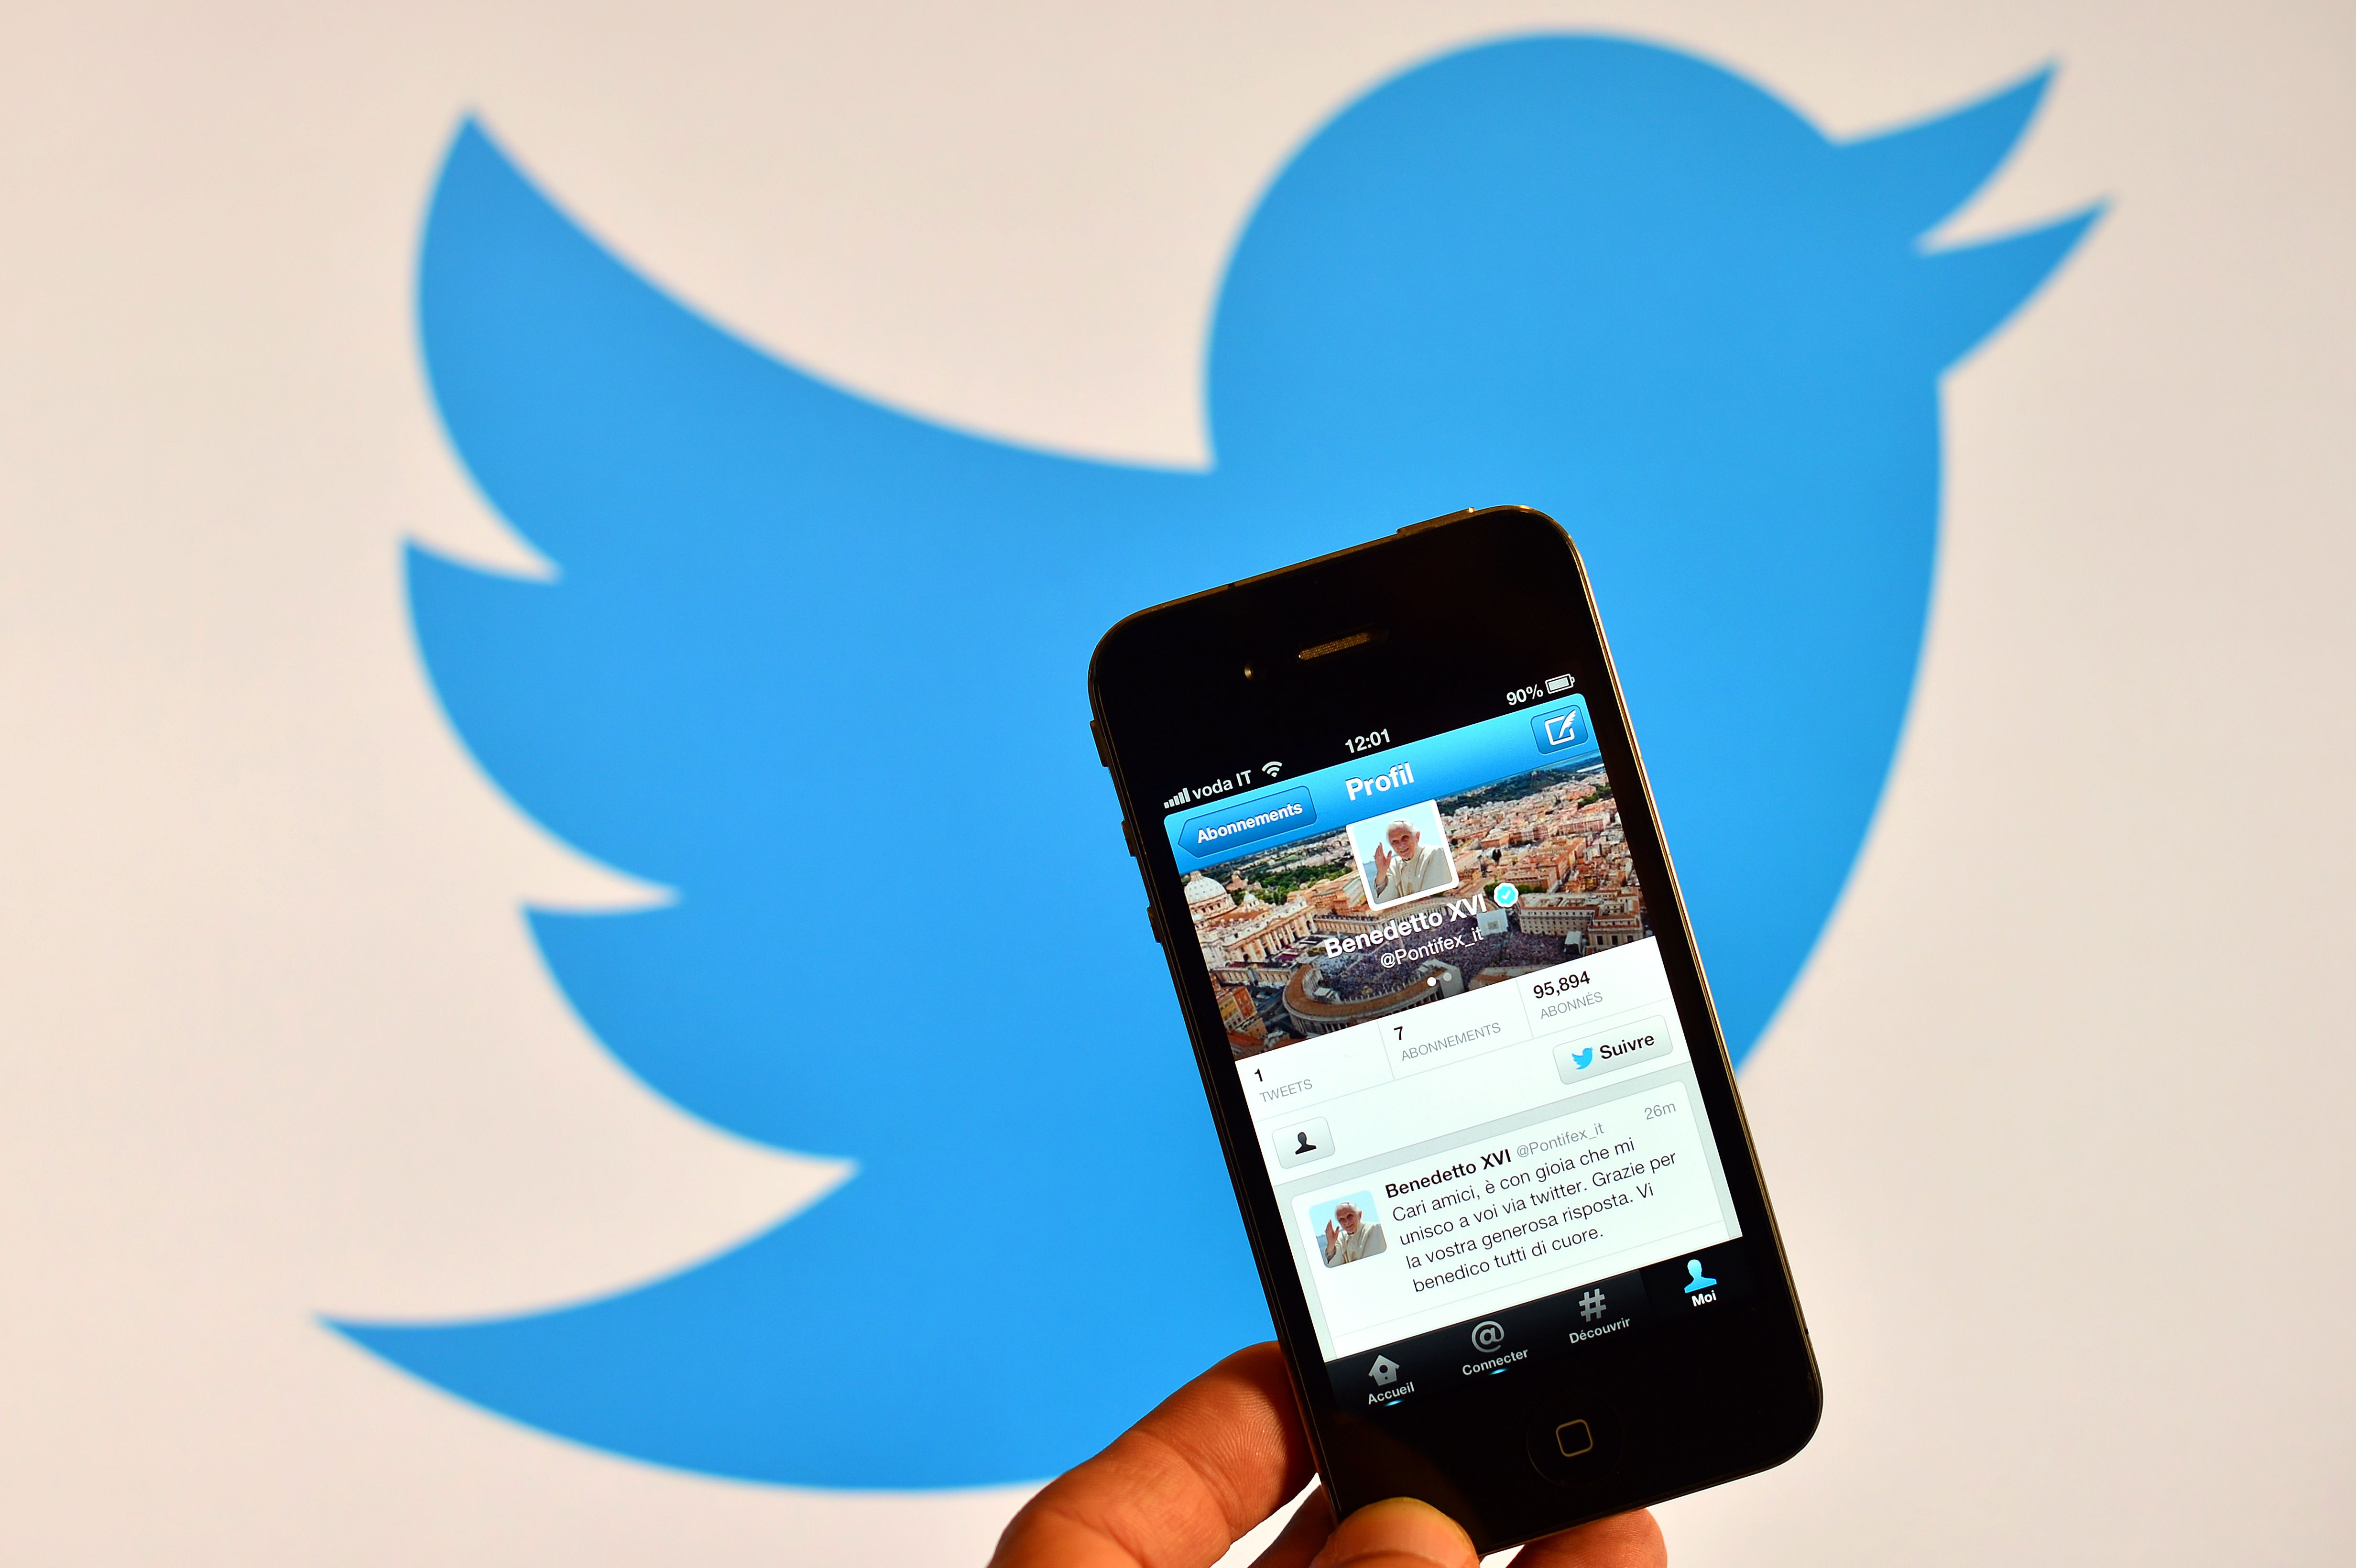 Twitter opens up mobile promoted account campaigns to all advertisers